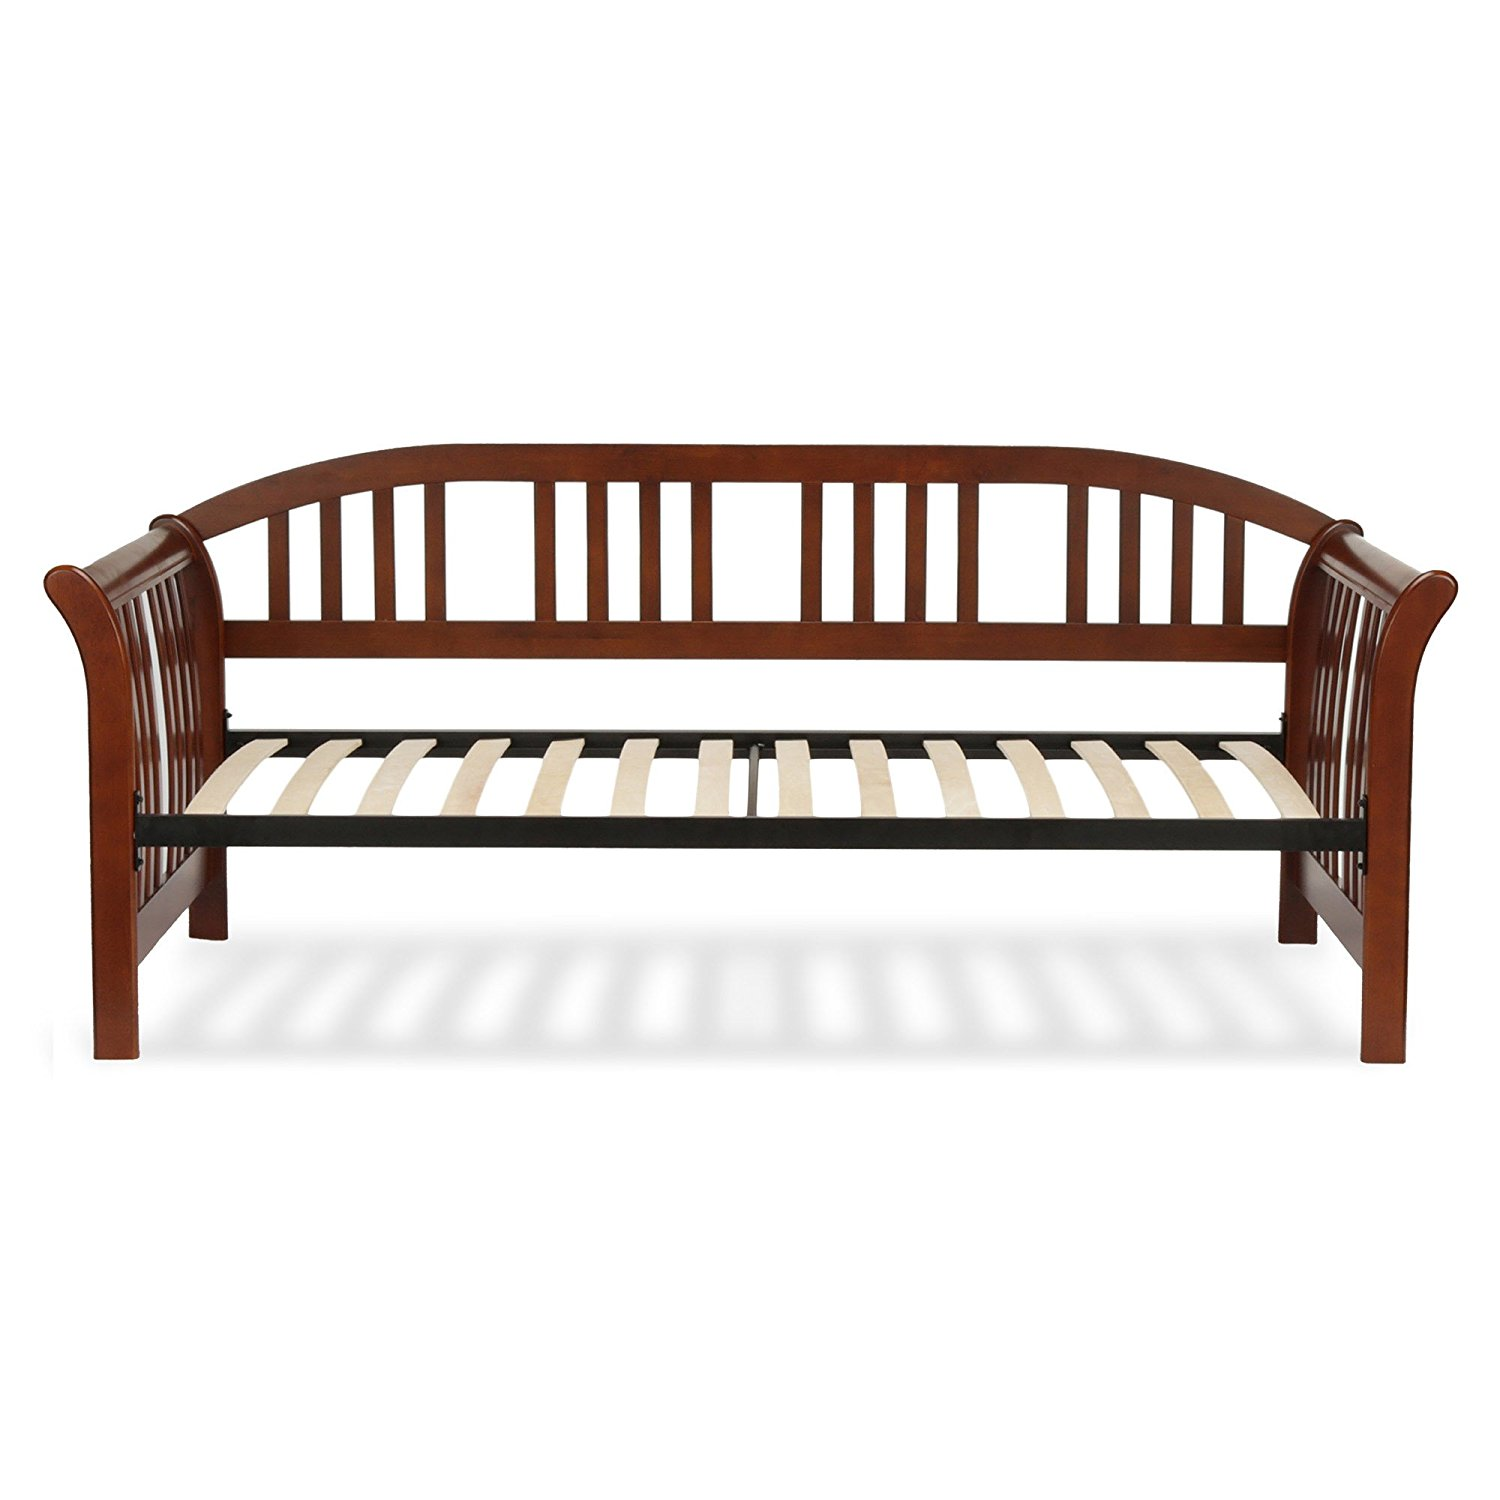 Fashion Bed Group Salem Complete Wood Daybed with Euro Top Spring Support Frame and Sleigh-Style Arms, Mahogany Finish, Twin